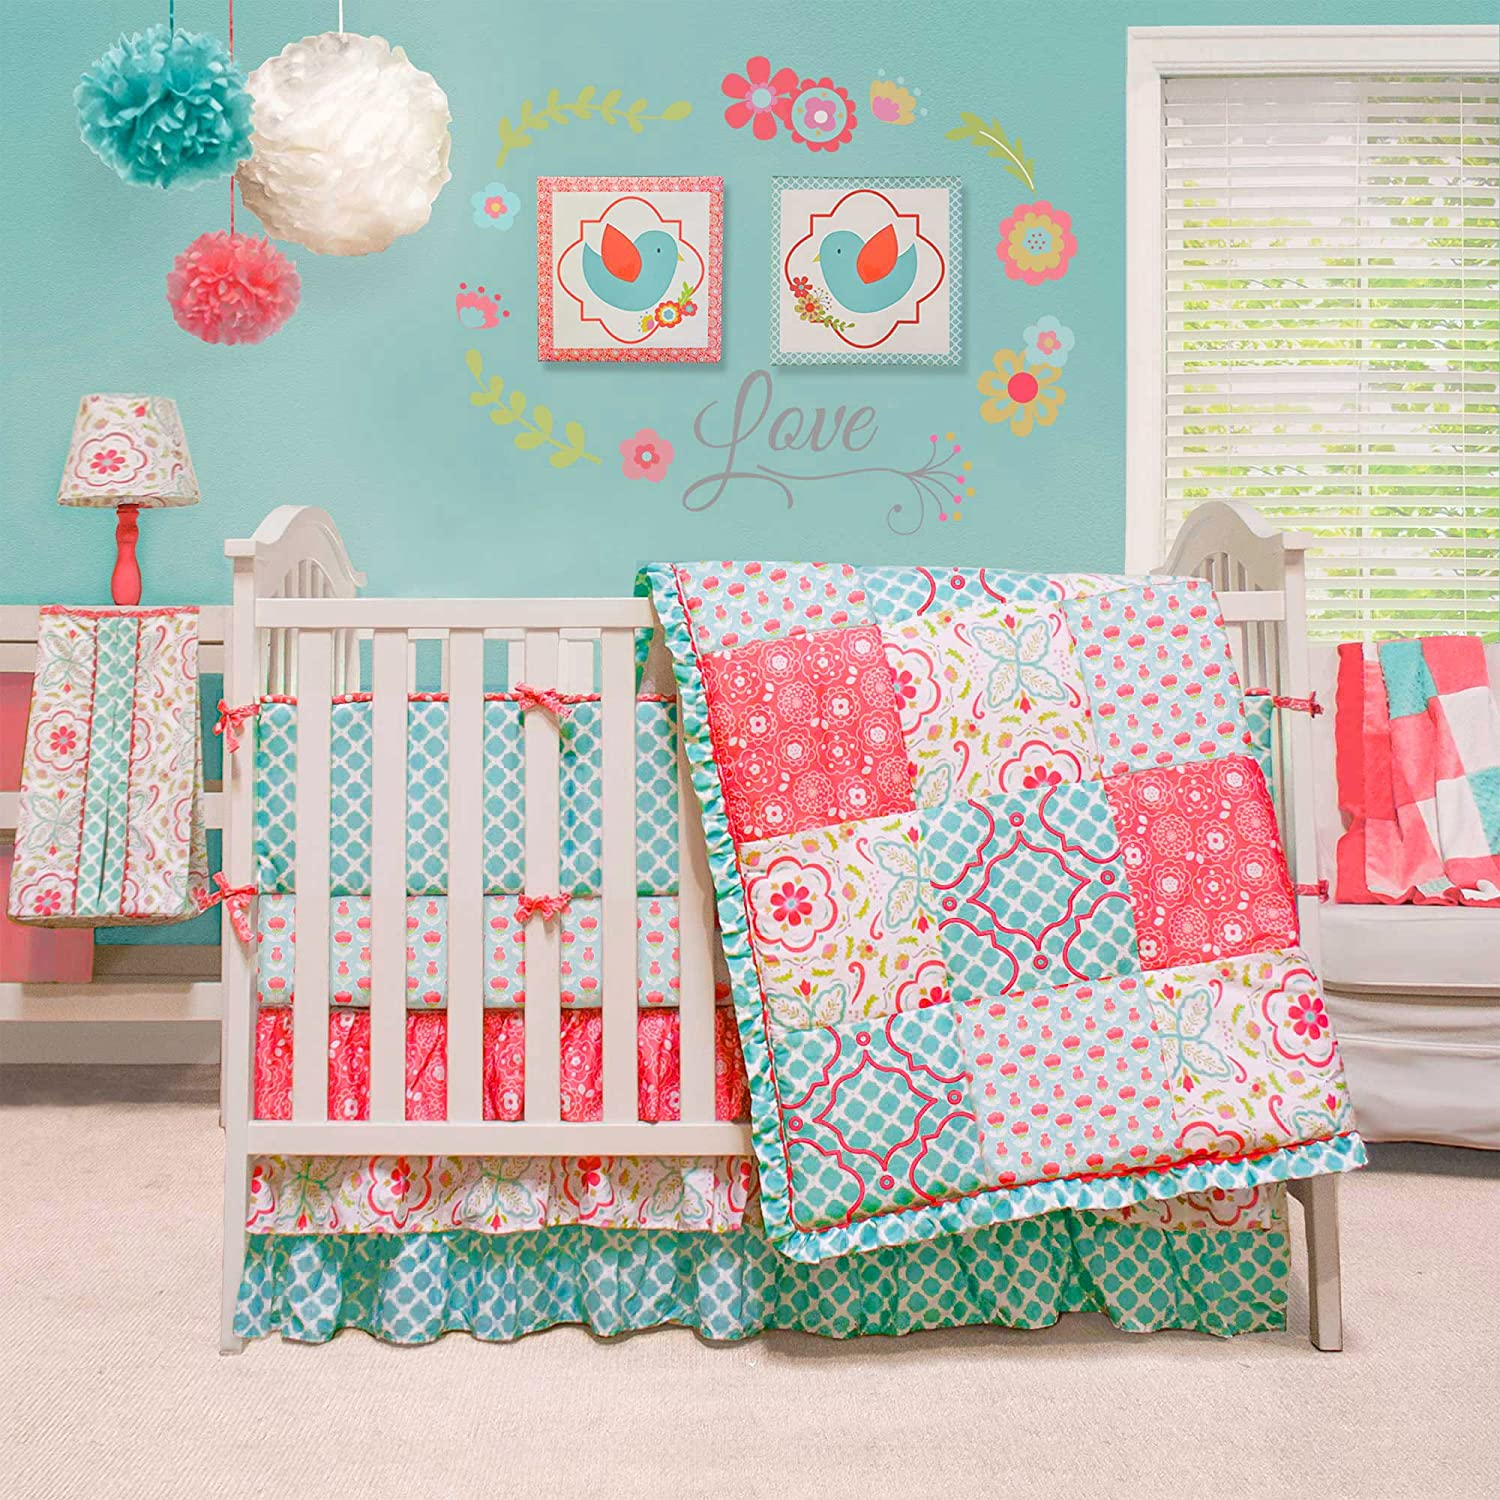 Mila Coral and Blue Floral Patchwork 4 Piece Baby Girl Crib Bedding by Peanut Shell Farallon Brands BSPS-MIL